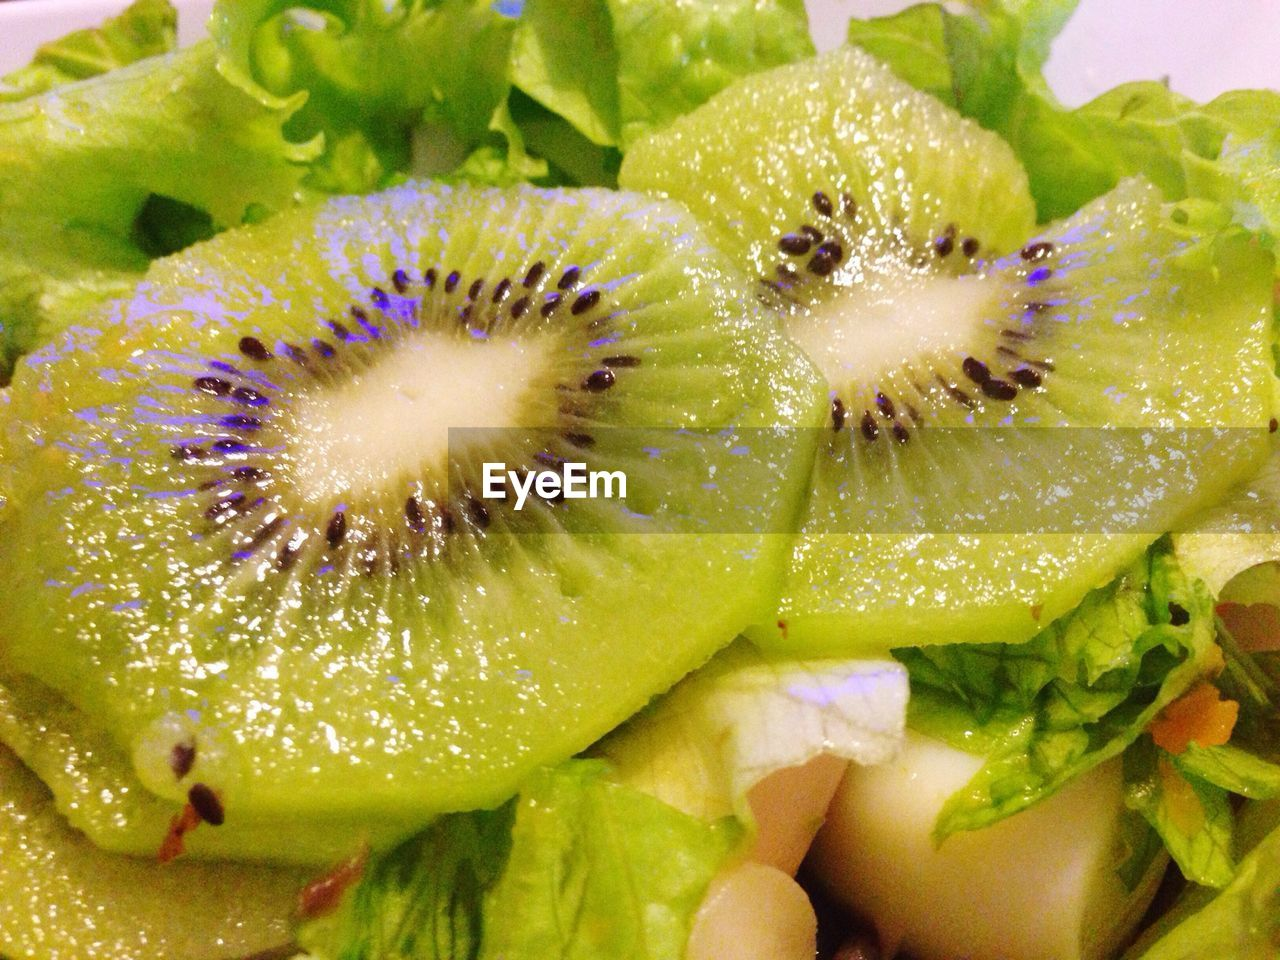 Close-up of kiwi on salad